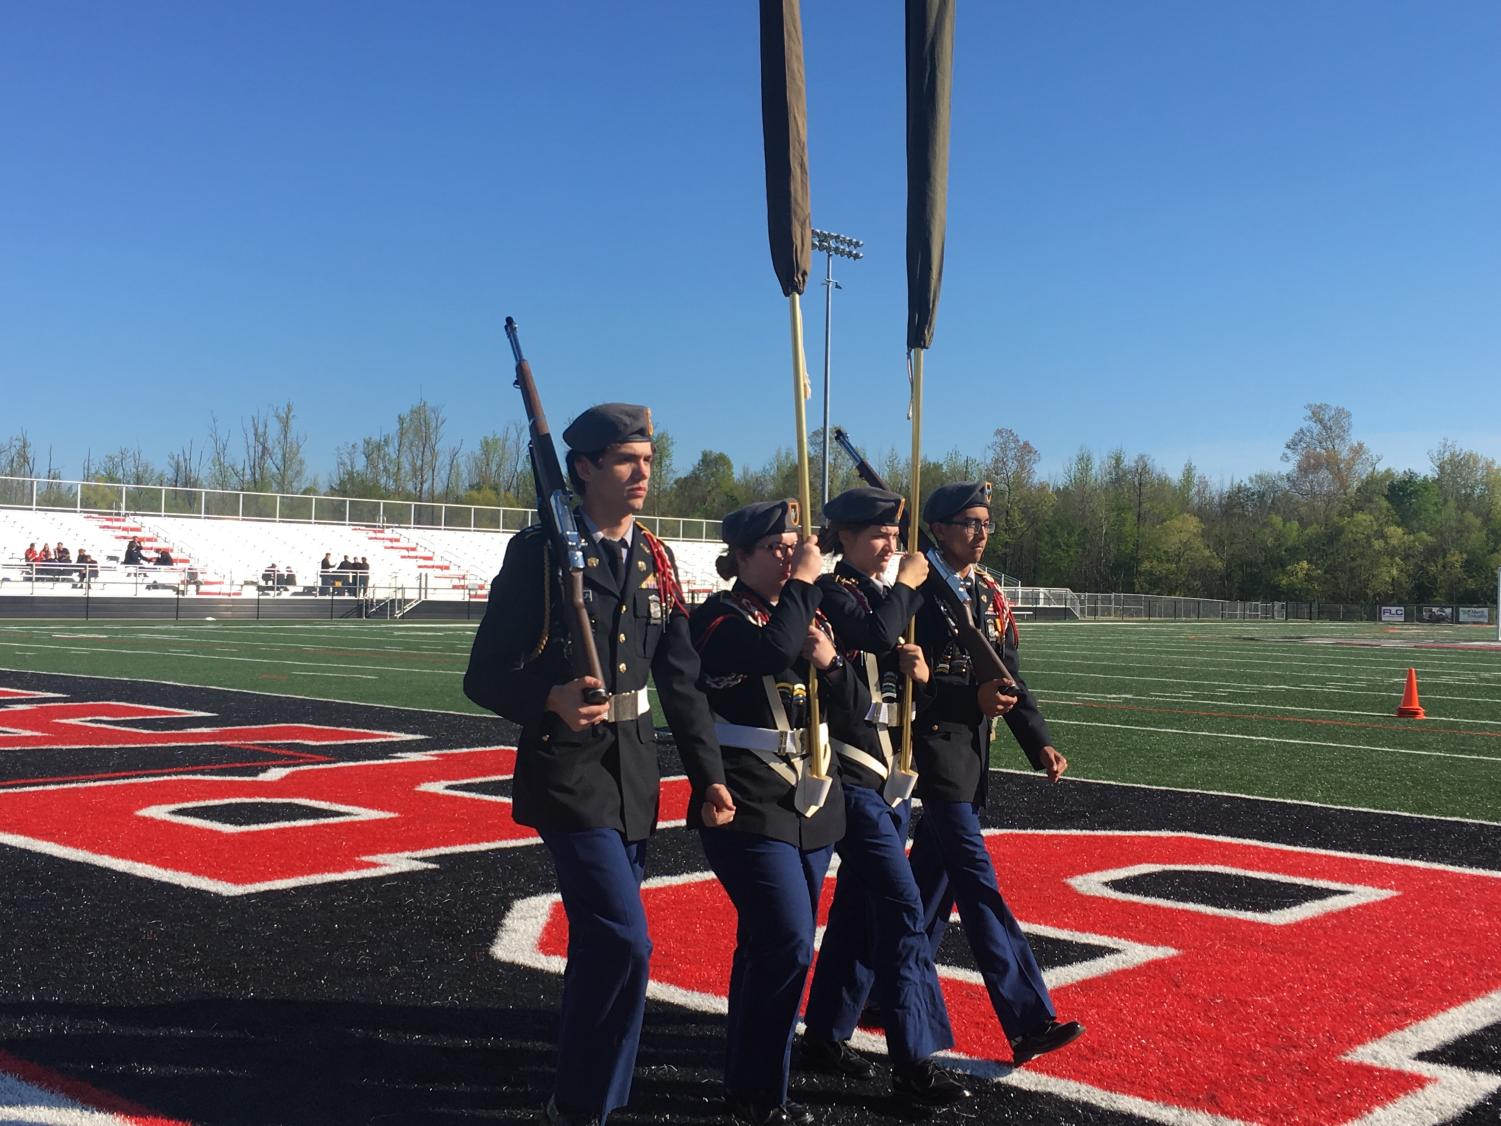 PHS JROTC cadets C/1LT Gaven Boydstun, C/LTC Jessica Smith (Commander of the color guard), C/SGT Madeline Pierce, and C/CPT Jose Banuelas entering the drill pad.